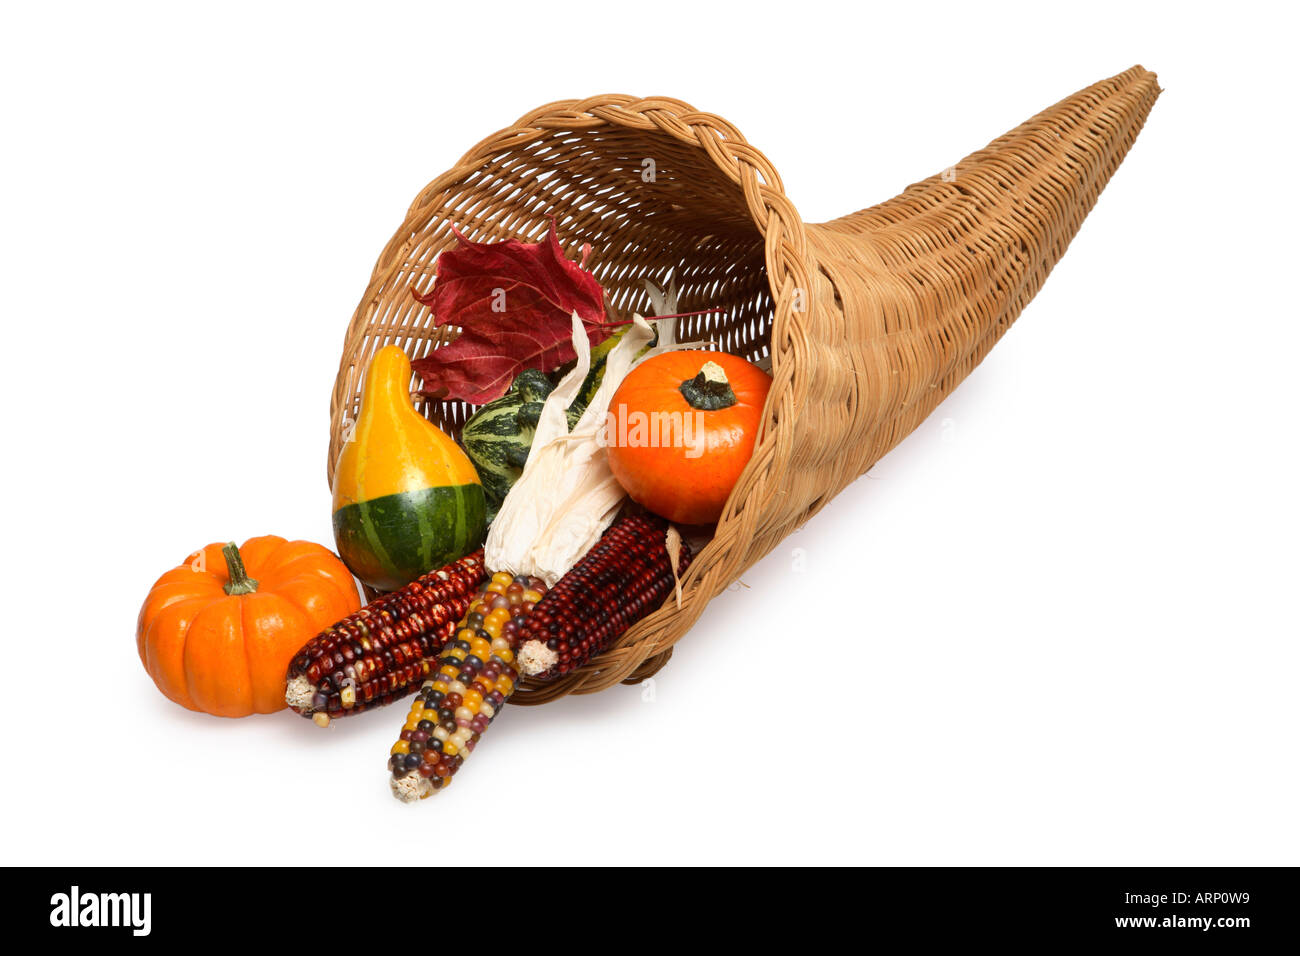 Cornucopia with Gourds and Indian Corn - Stock Image